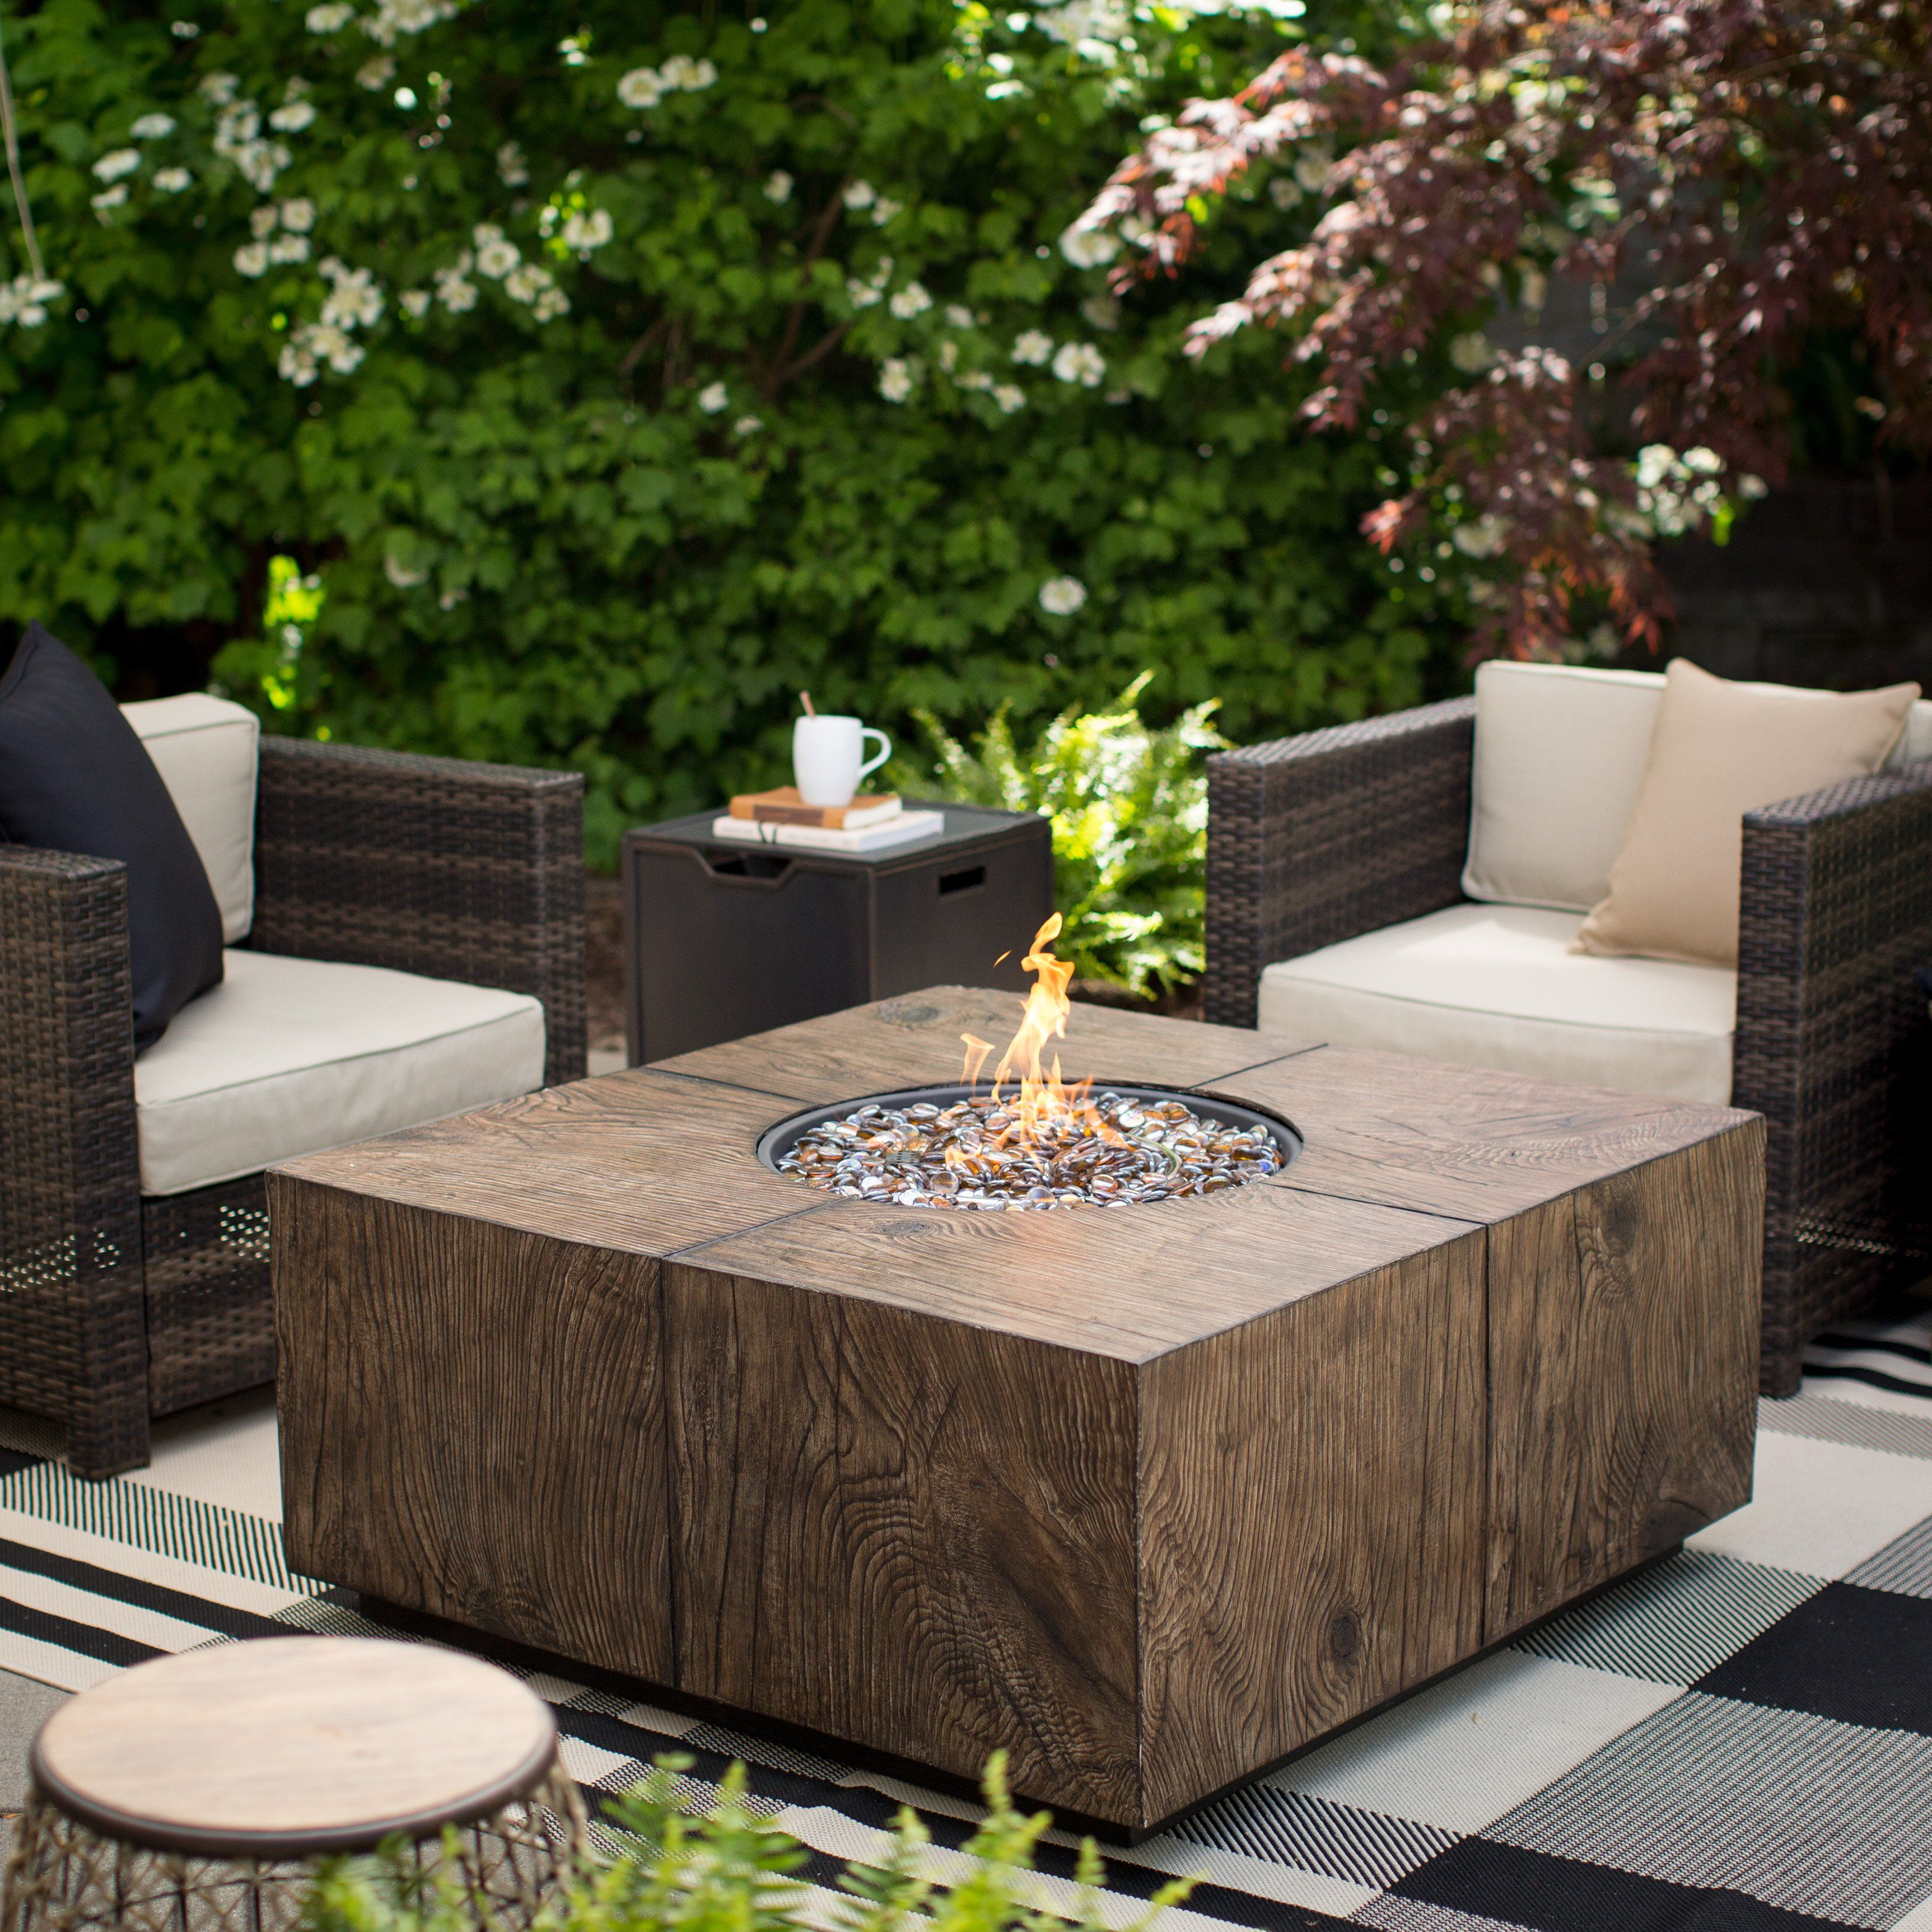 Red Ember Stockton Fire Pit The Red Ember Stockton Fire Pit will